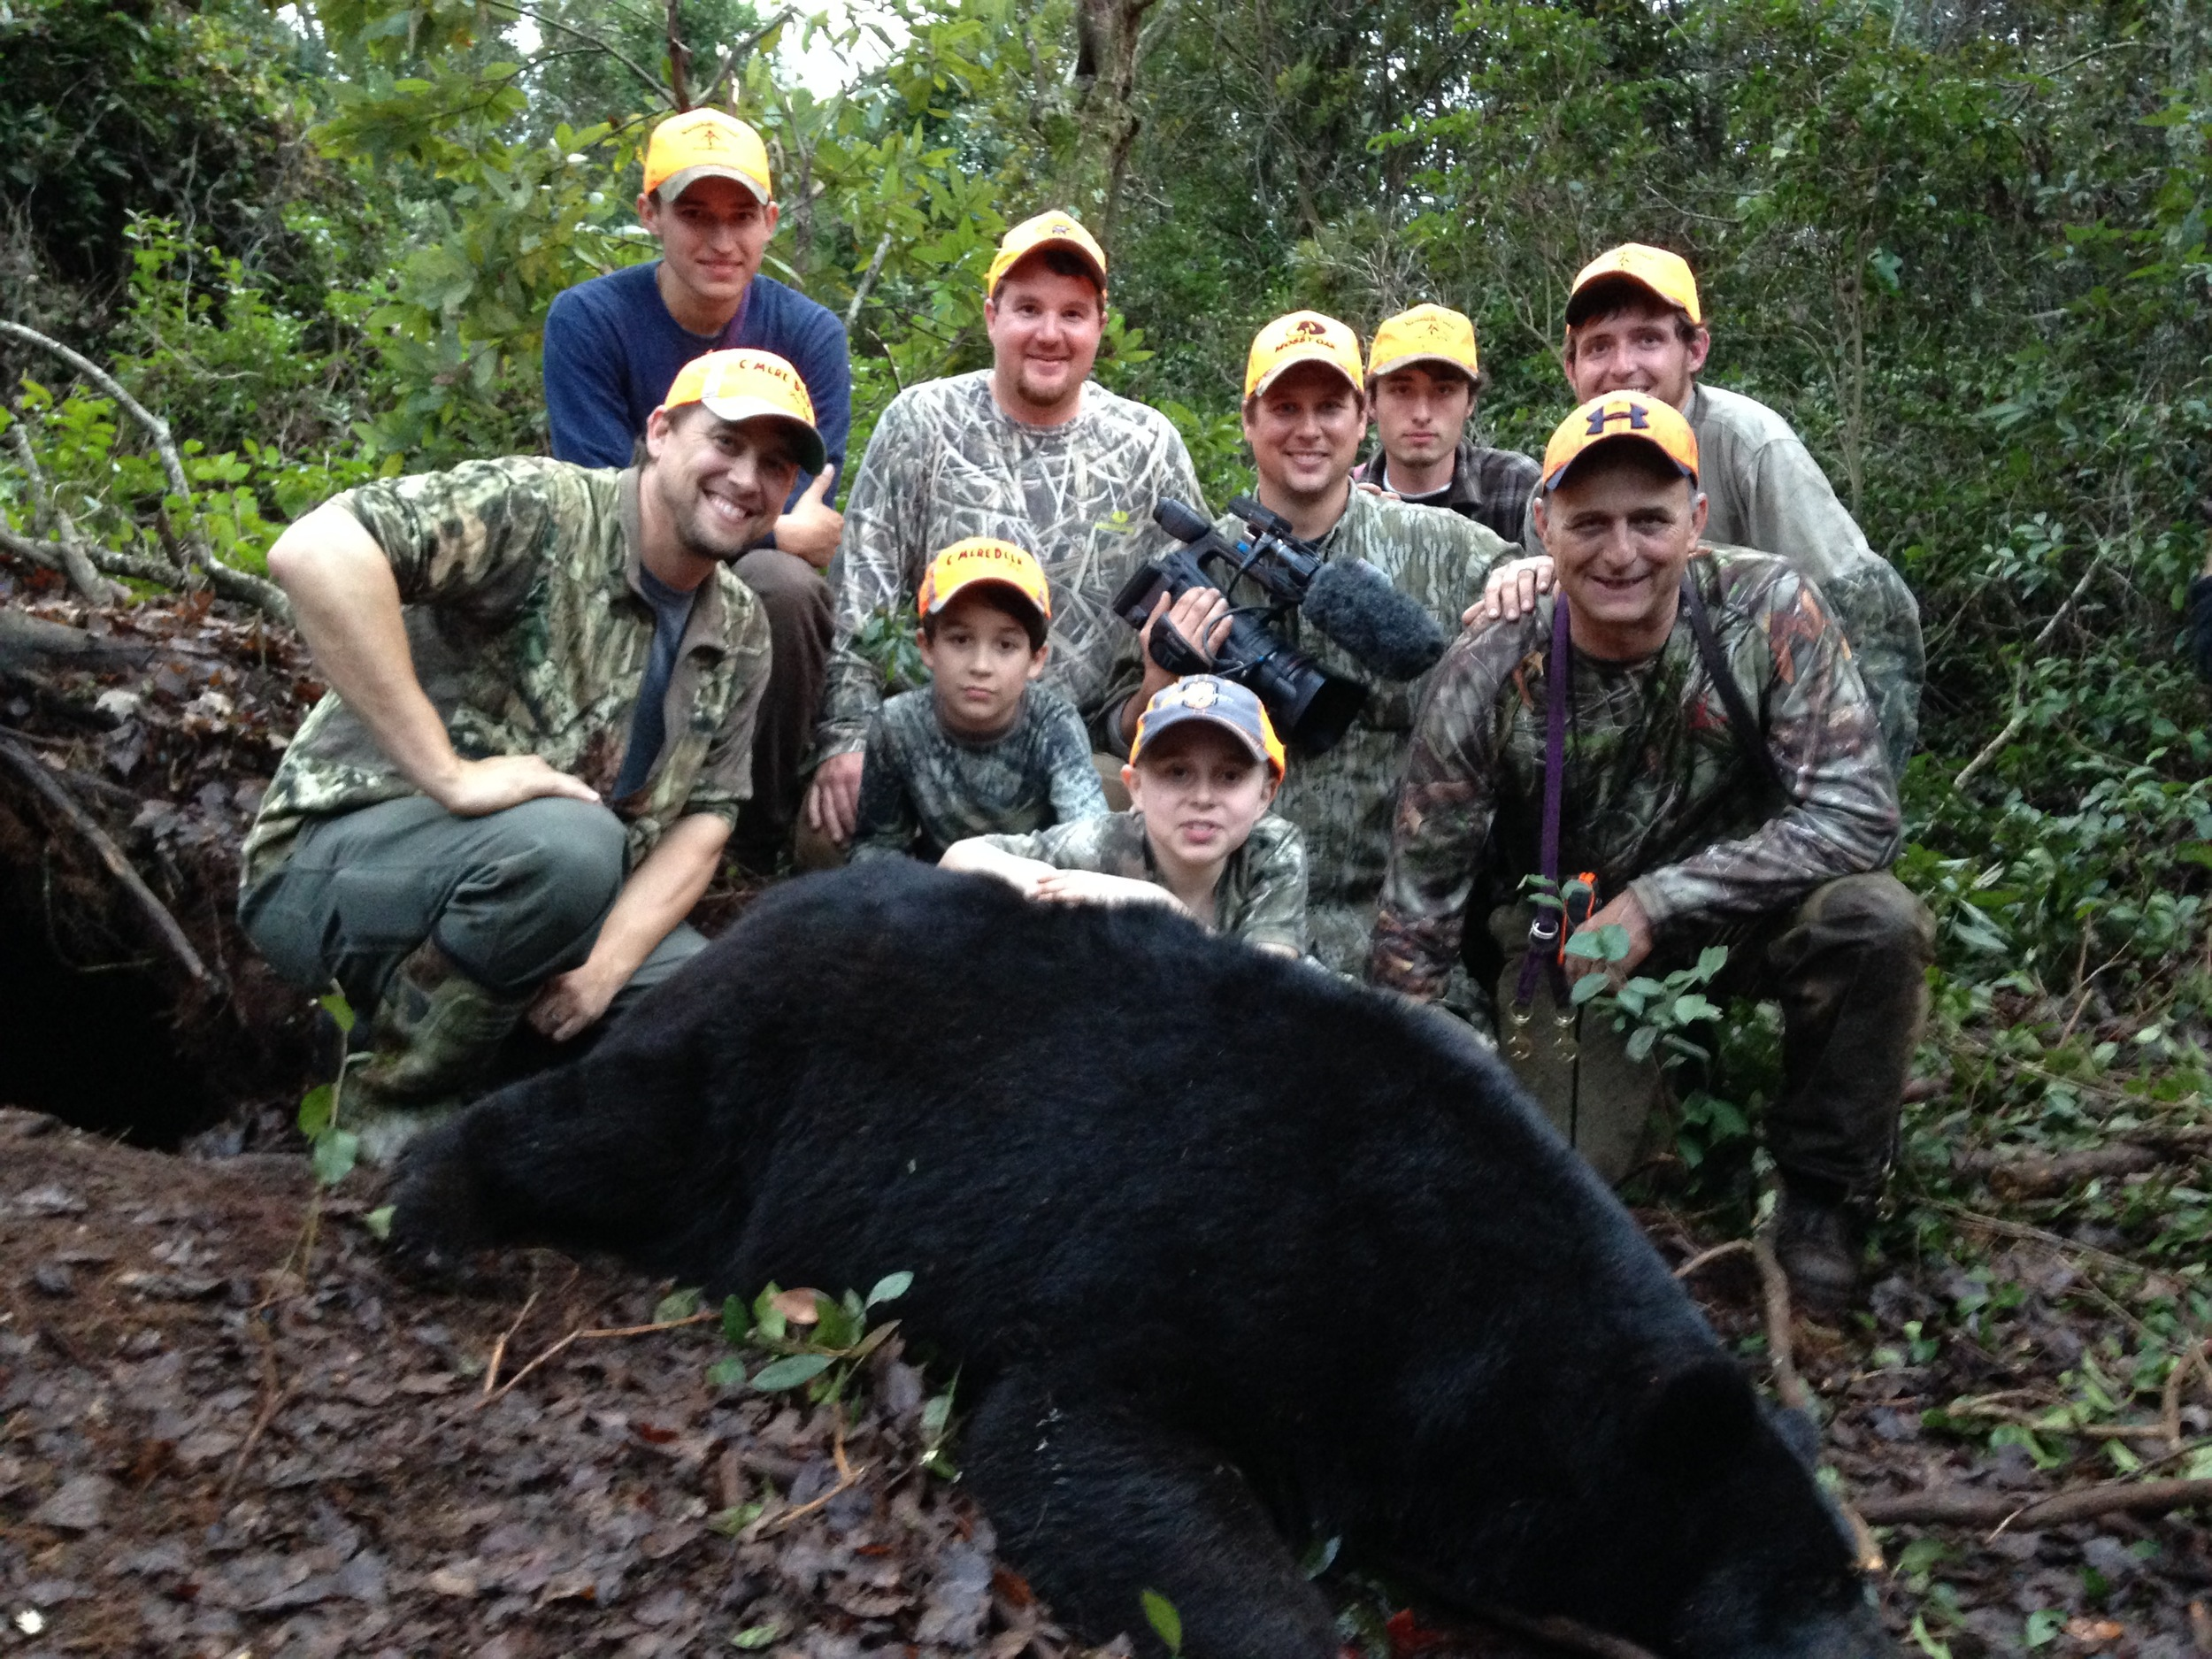 Braedan and his Black Bear hunt with a Great group of guys that were involved.